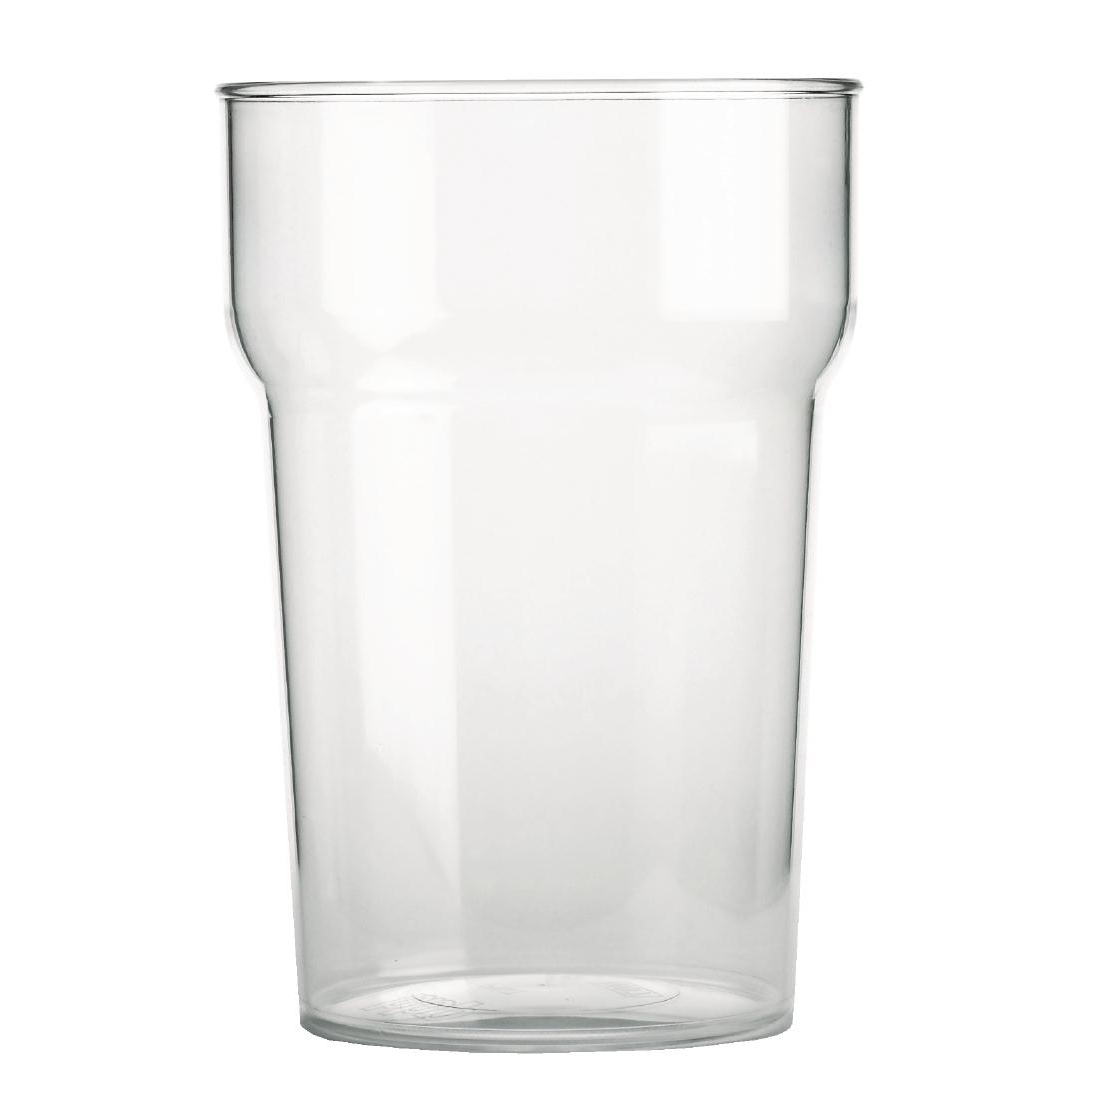 BBP Polycarbonate Nonic Pint Glasses 570ml CE Marked